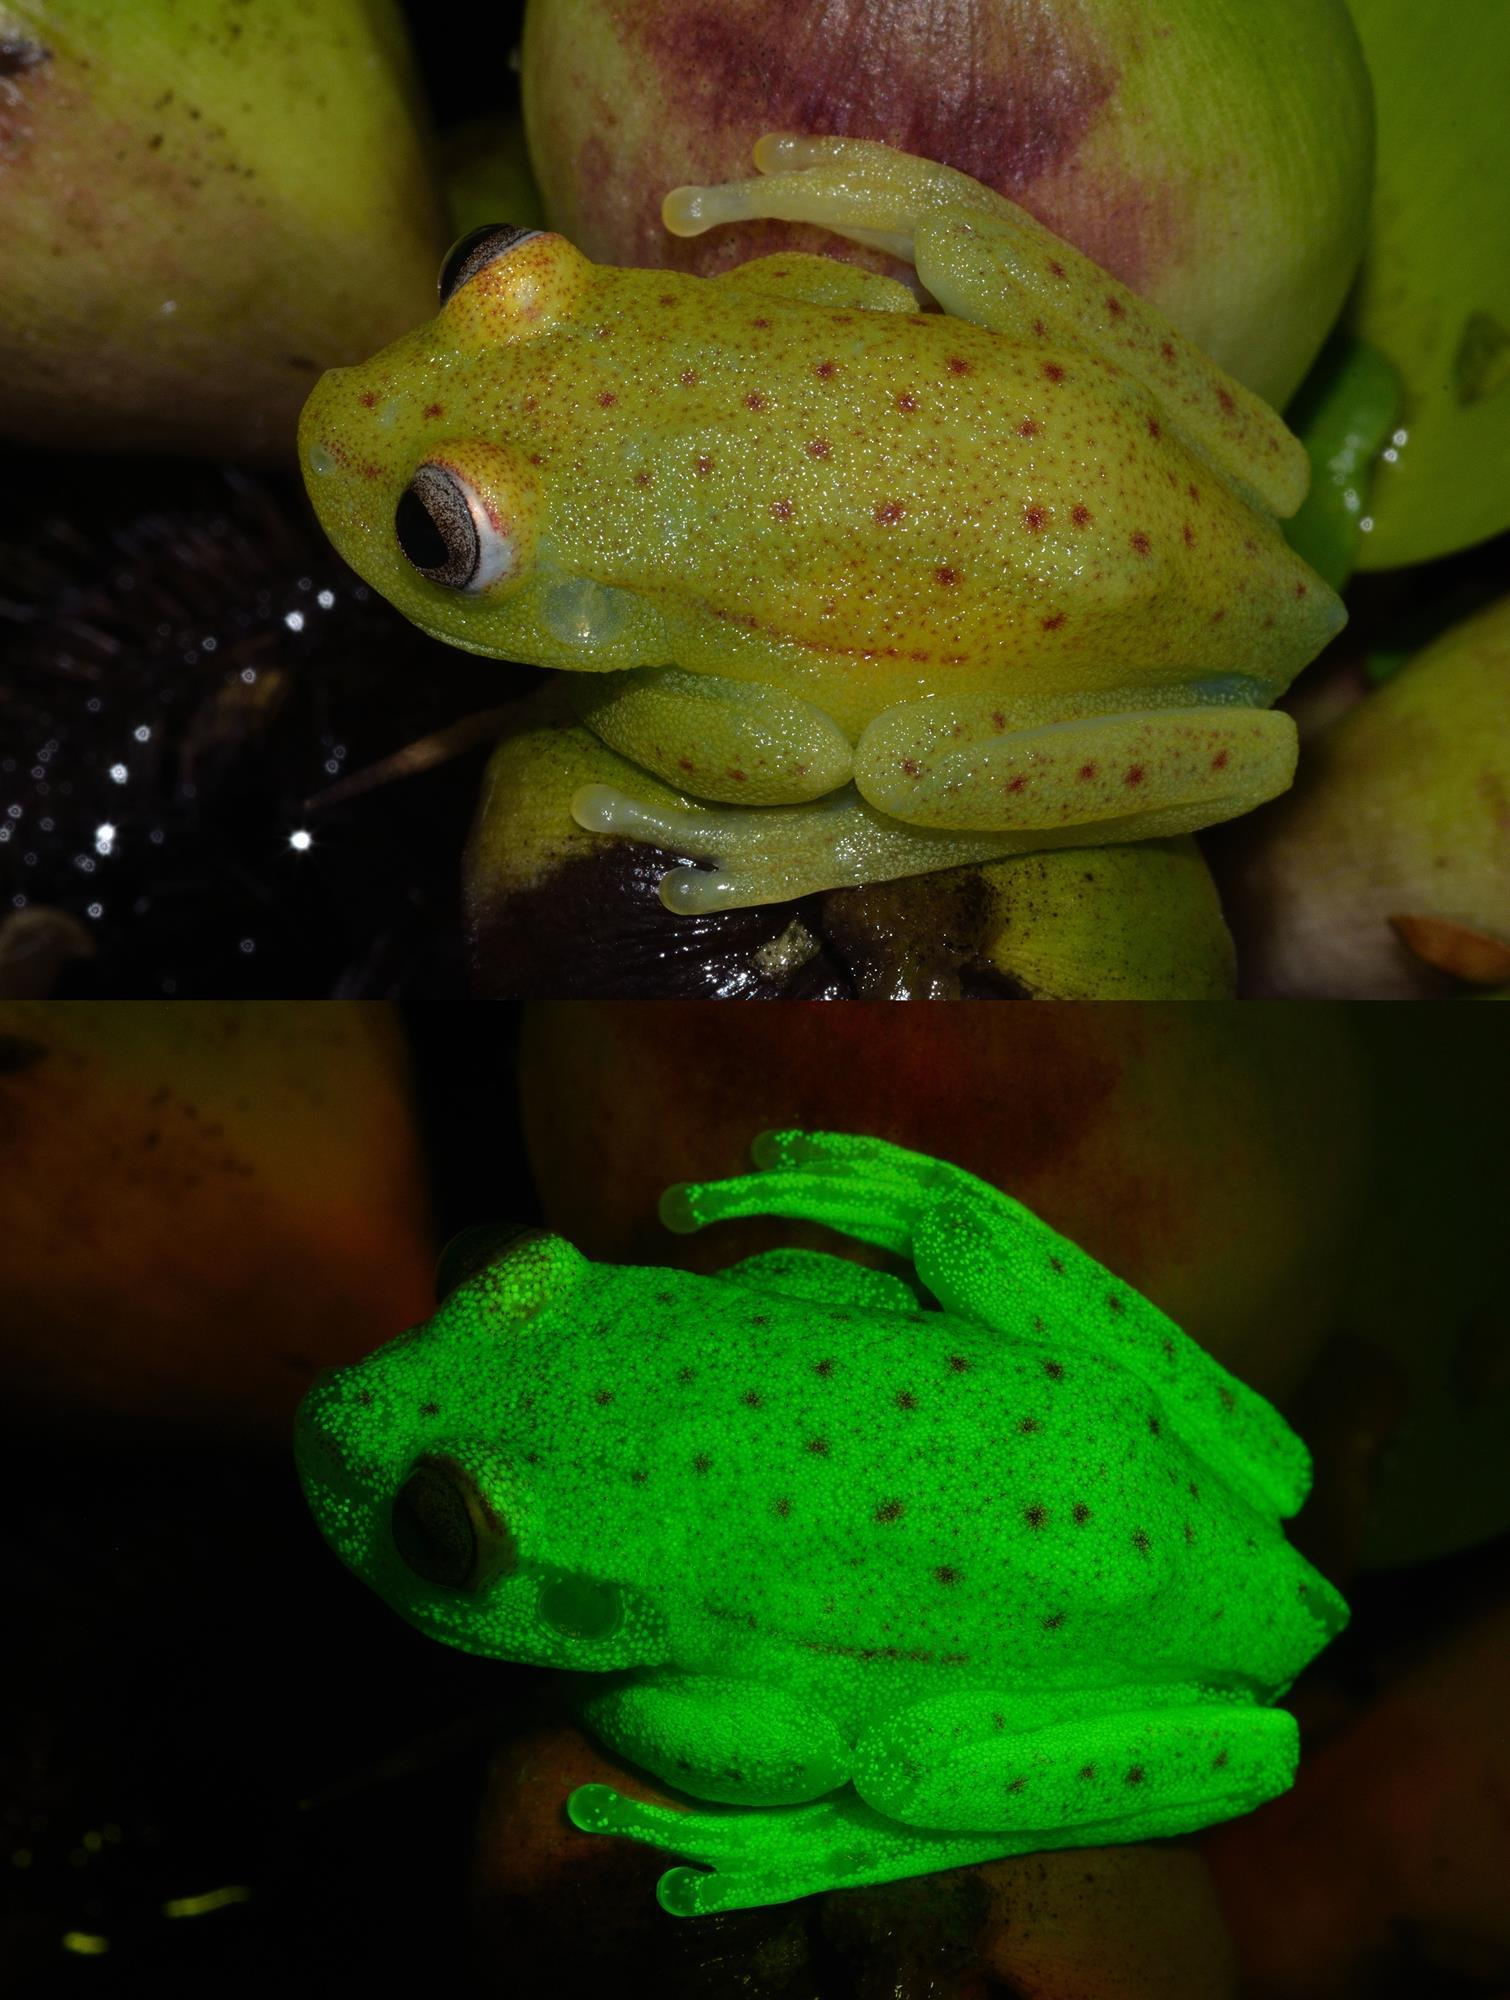 fluorescent frog first down to new molecule research chemistry